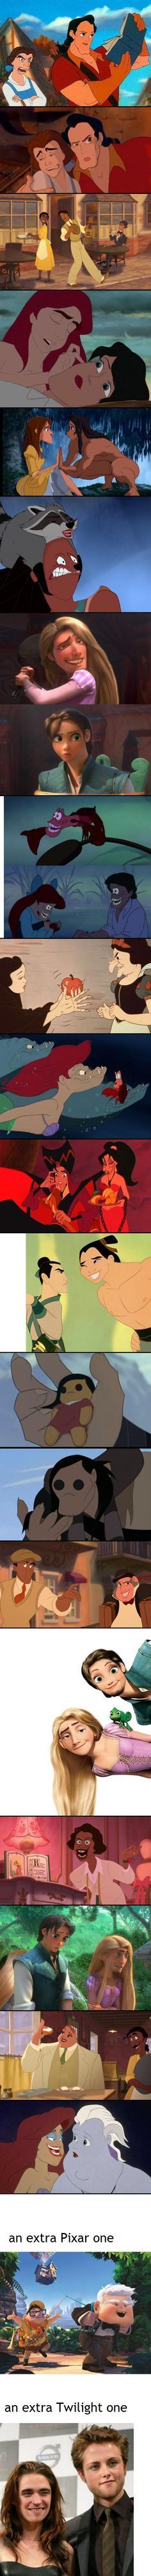 Disney faces switched! This made me laugh harder than I'd like to admit.